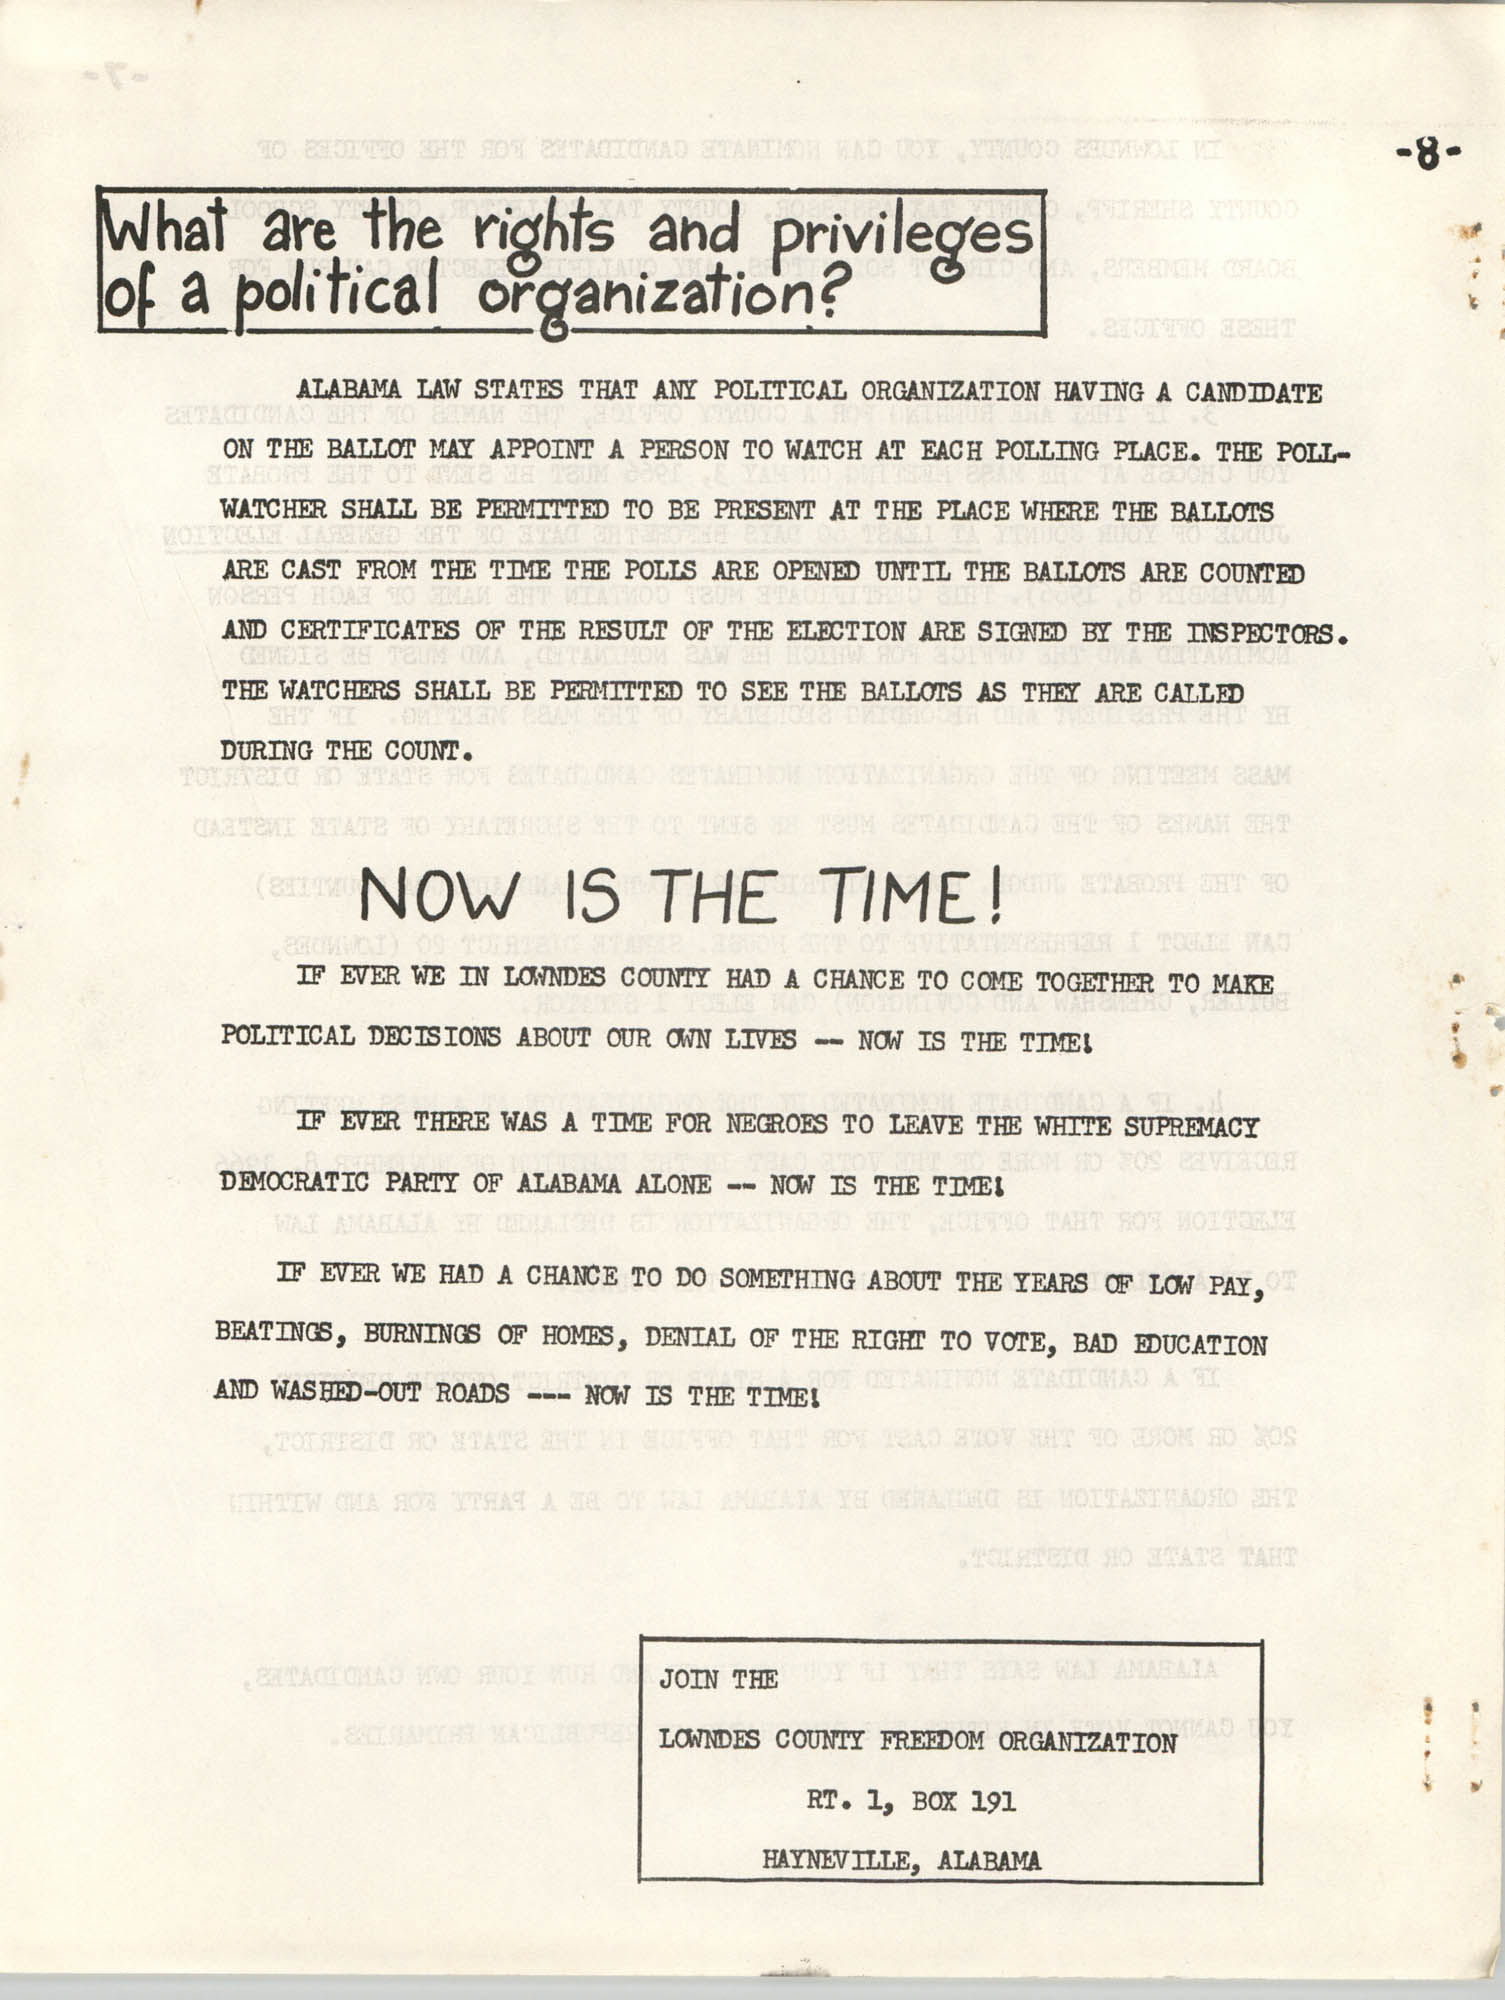 Lowndes County Freedom Organization Voting Pamphlet, Page 10